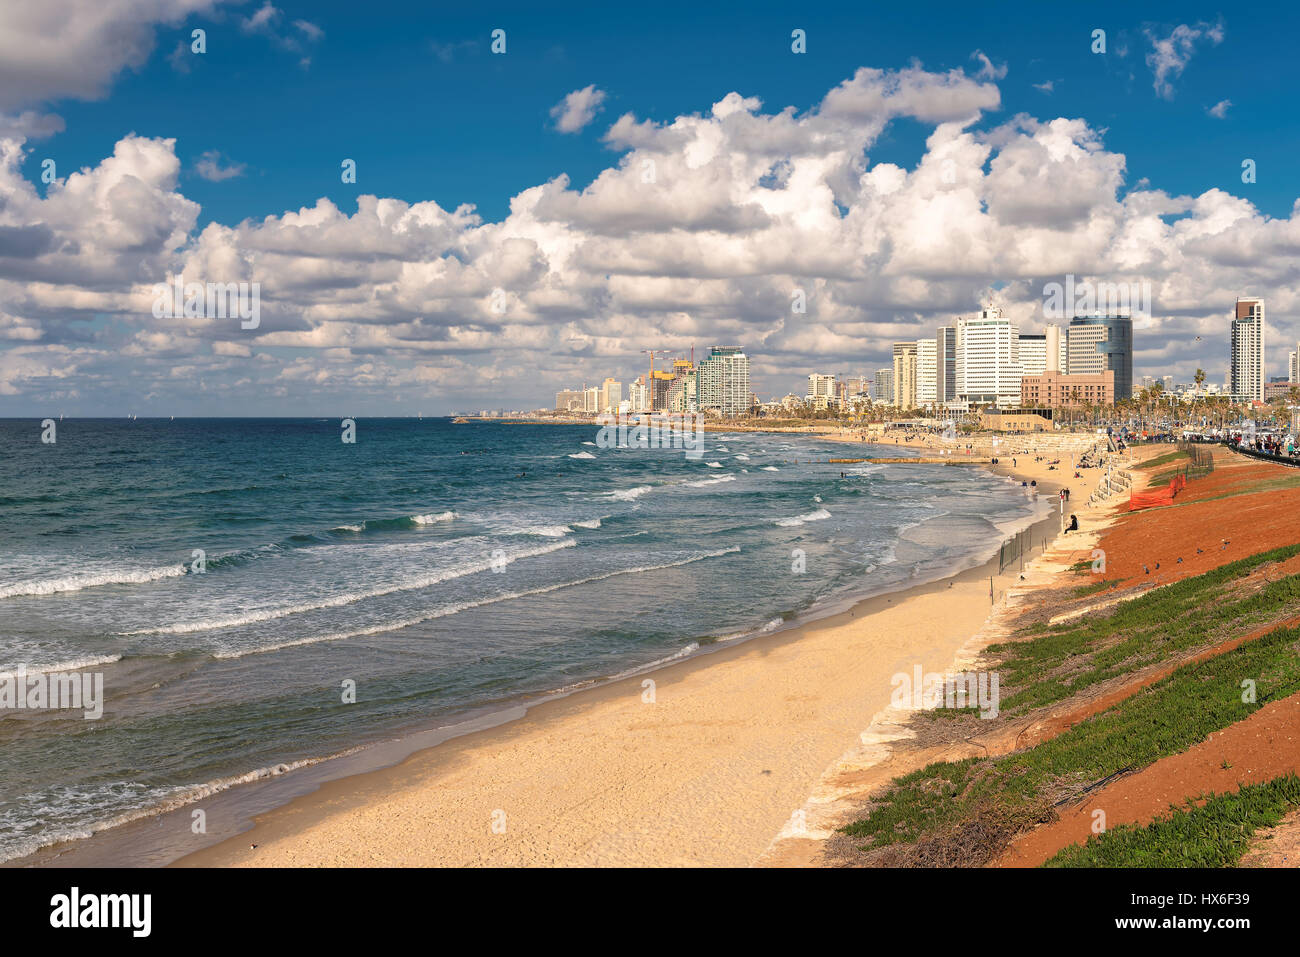 Tel Aviv coast with a view of Mediterranean sea and skyscrapers, Israel. - Stock Image